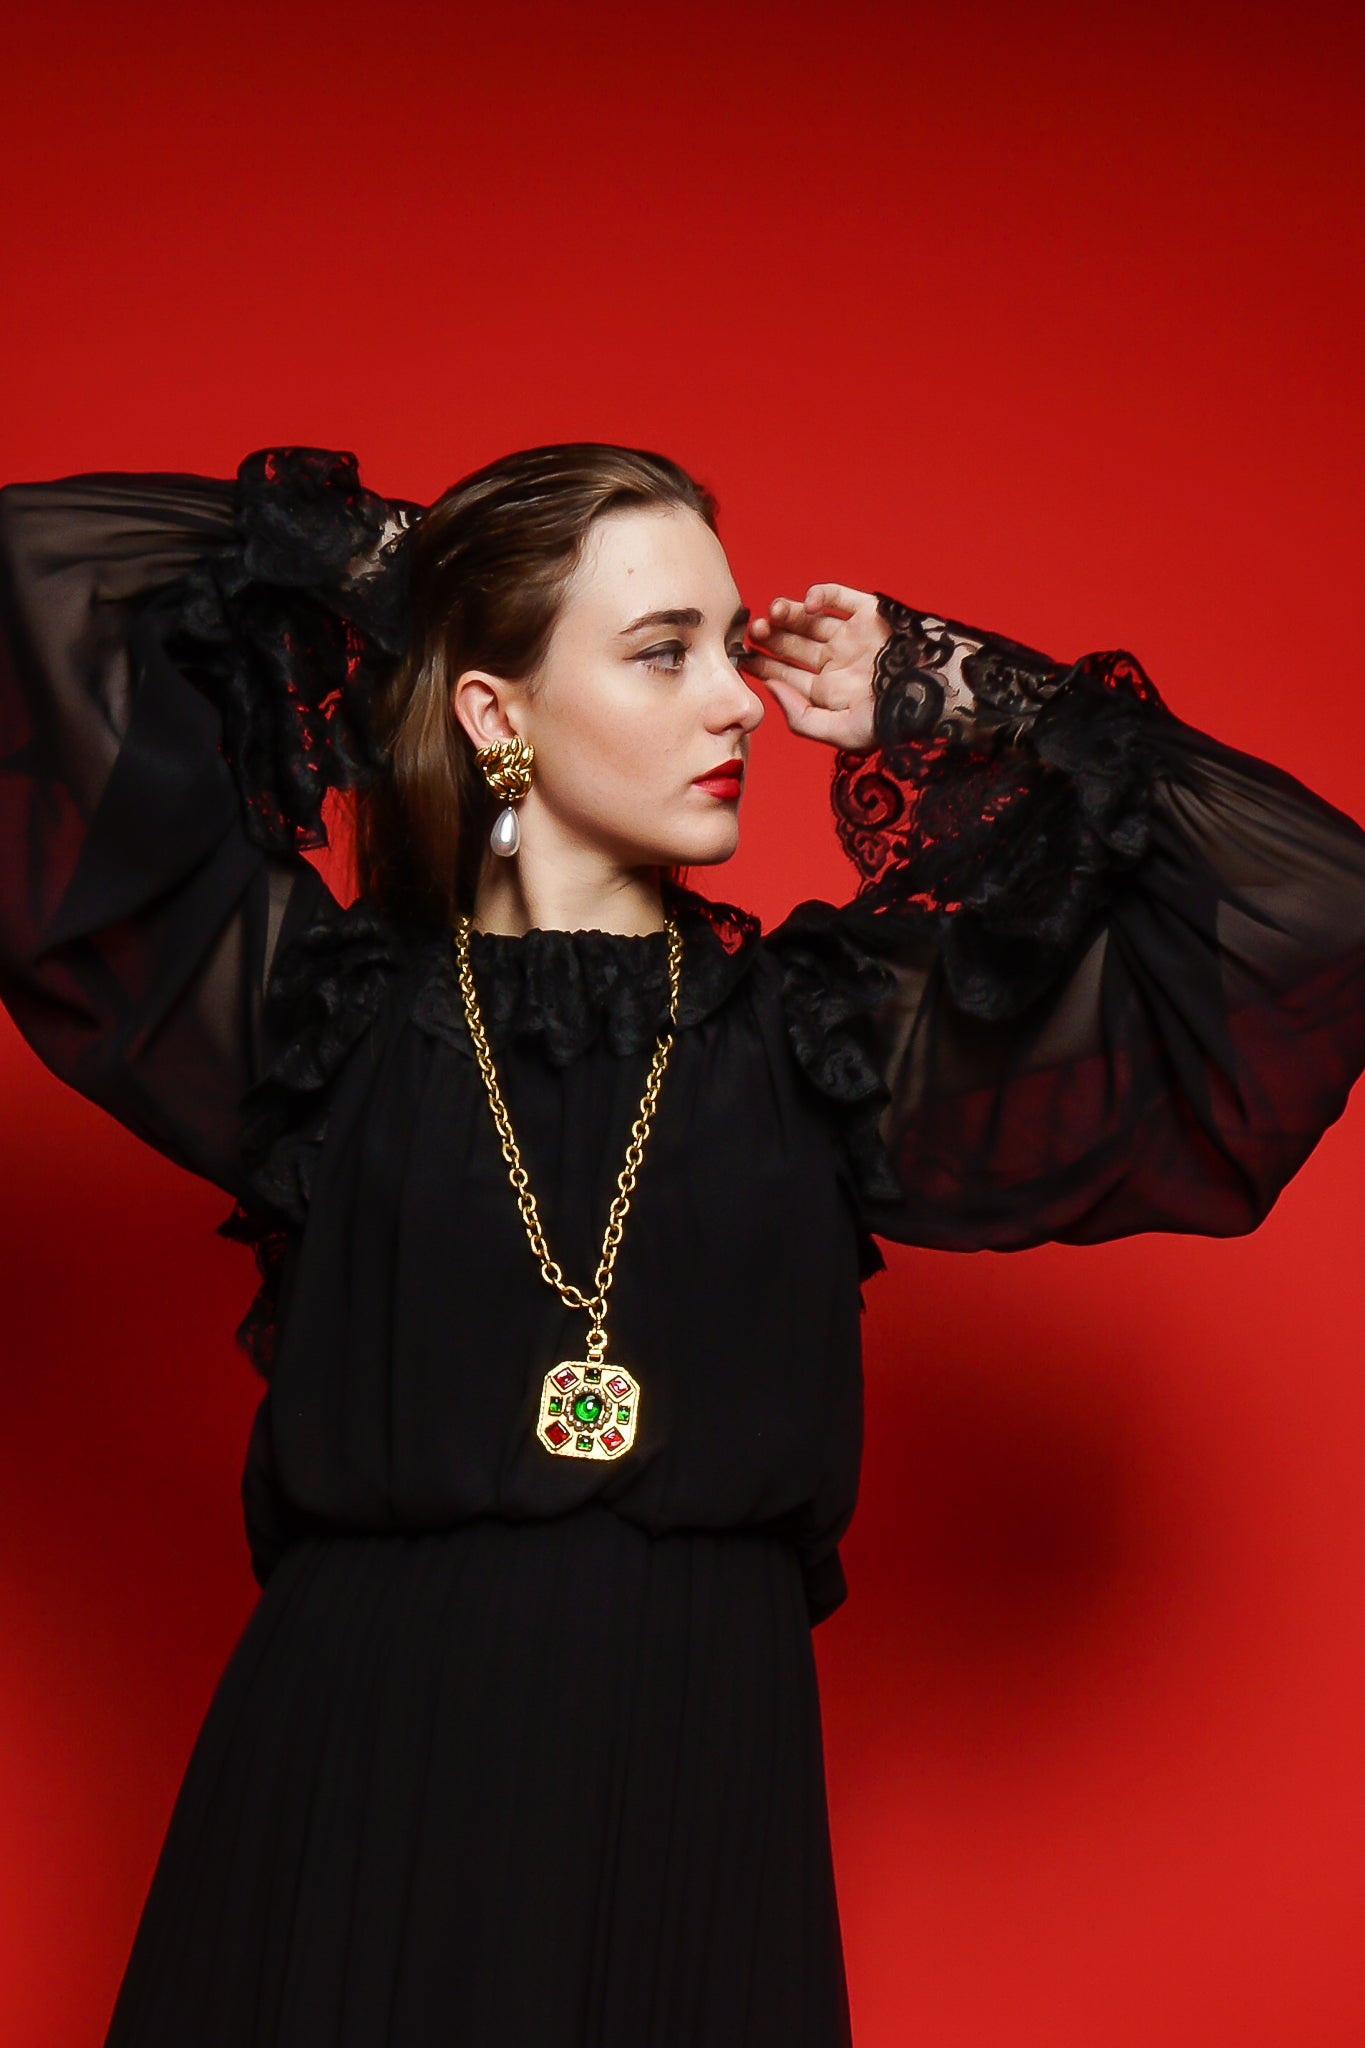 Girl in black Richilene lace dress & Chanel necklace on red background at Recess Los Angeles